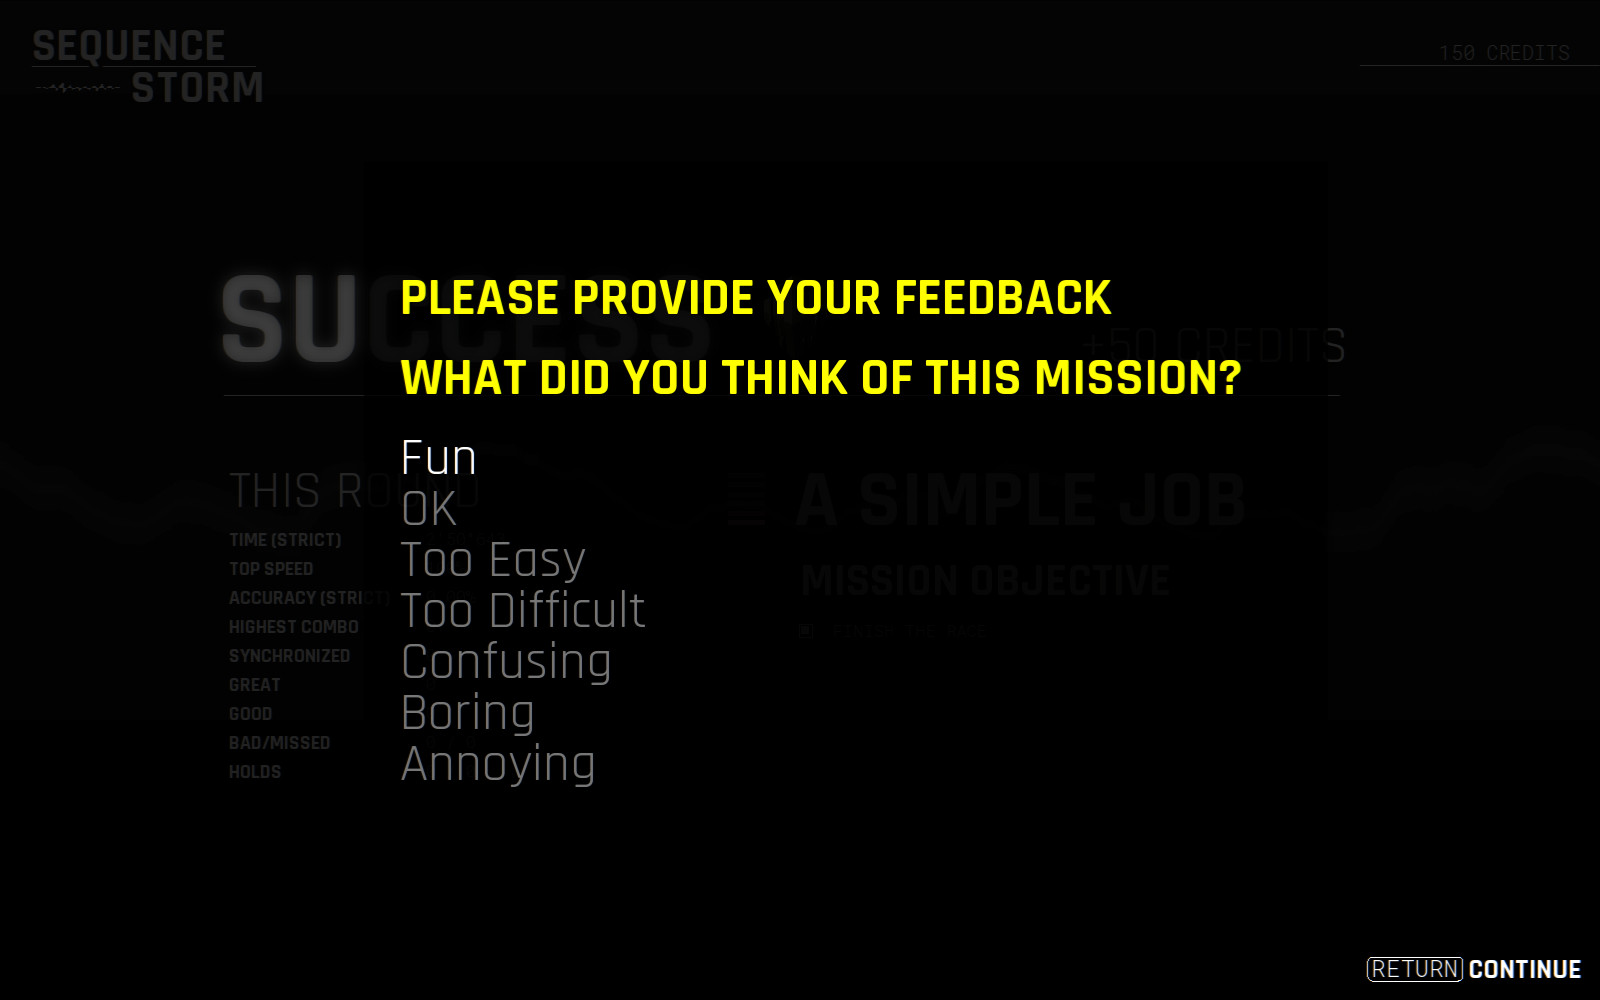 SEQUENCE STORM playtest feedback form